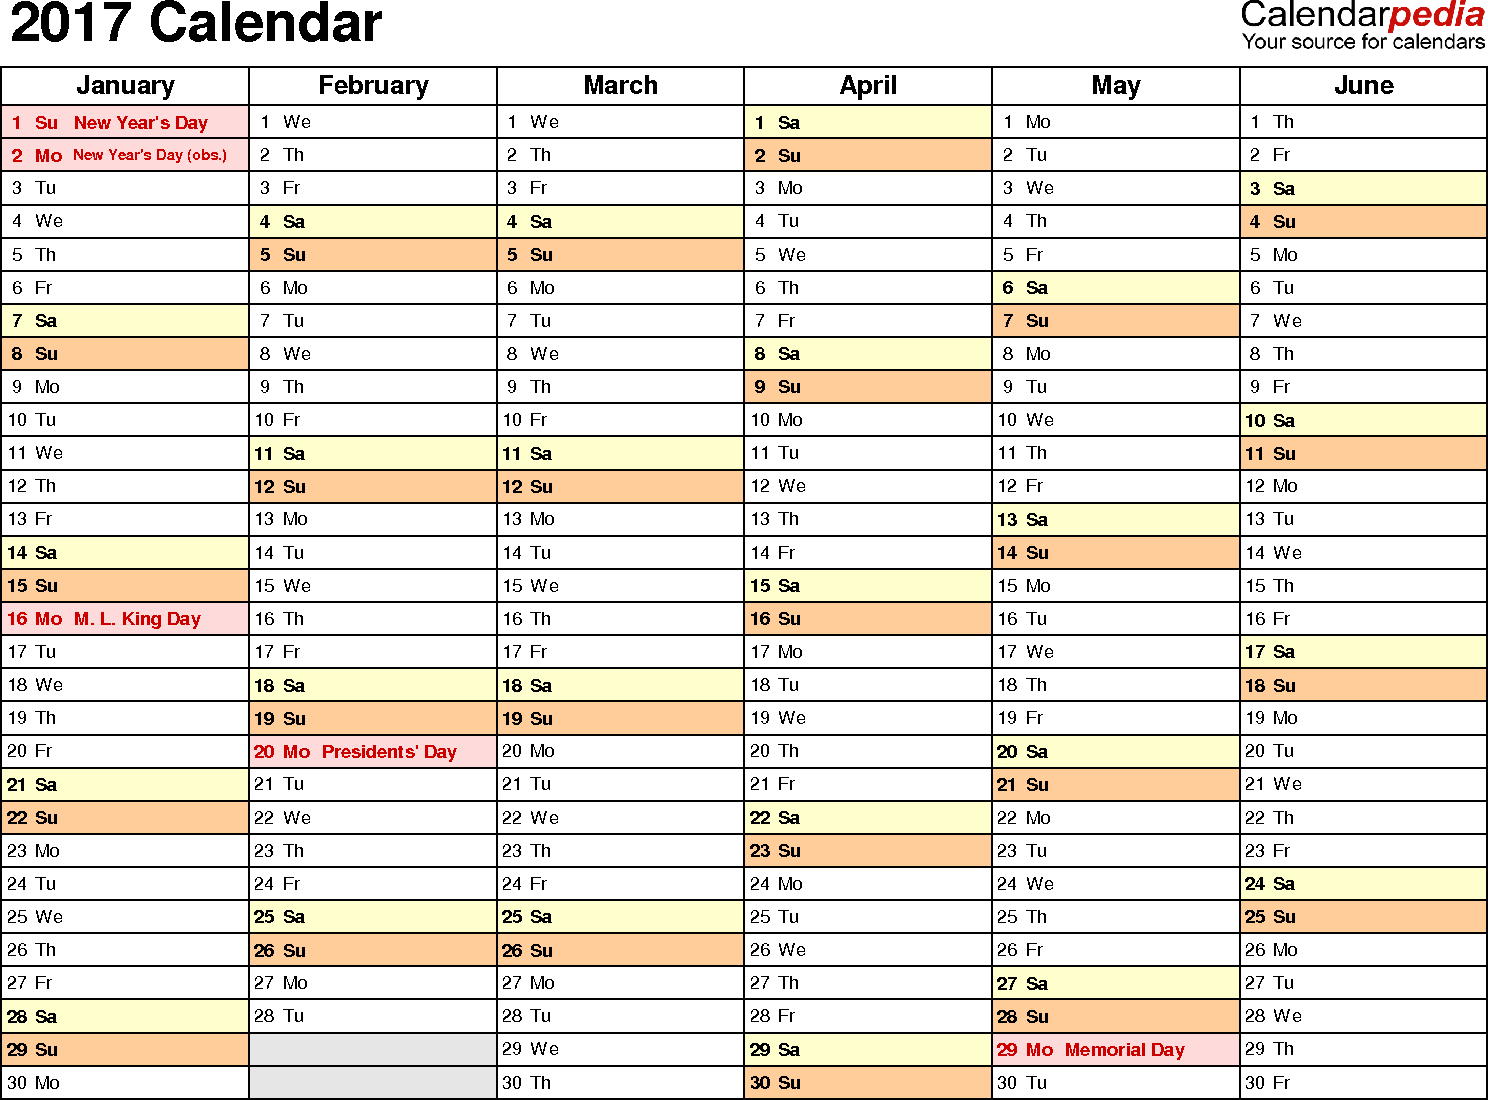 Ediblewildsus  Fascinating  Calendar  Download  Free Printable Excel Templates Xls With Interesting Template   Calendar For Excel Months Horizontally  Pages Landscape Orientation With Beauteous Fantasy Baseball Excel Spreadsheet Also Excel Vba Script In Addition Excel Bullet And Convert Mac Numbers To Excel As Well As Excel Cpk Additionally Create A Barcode In Excel From Calendarpediacom With Ediblewildsus  Interesting  Calendar  Download  Free Printable Excel Templates Xls With Beauteous Template   Calendar For Excel Months Horizontally  Pages Landscape Orientation And Fascinating Fantasy Baseball Excel Spreadsheet Also Excel Vba Script In Addition Excel Bullet From Calendarpediacom